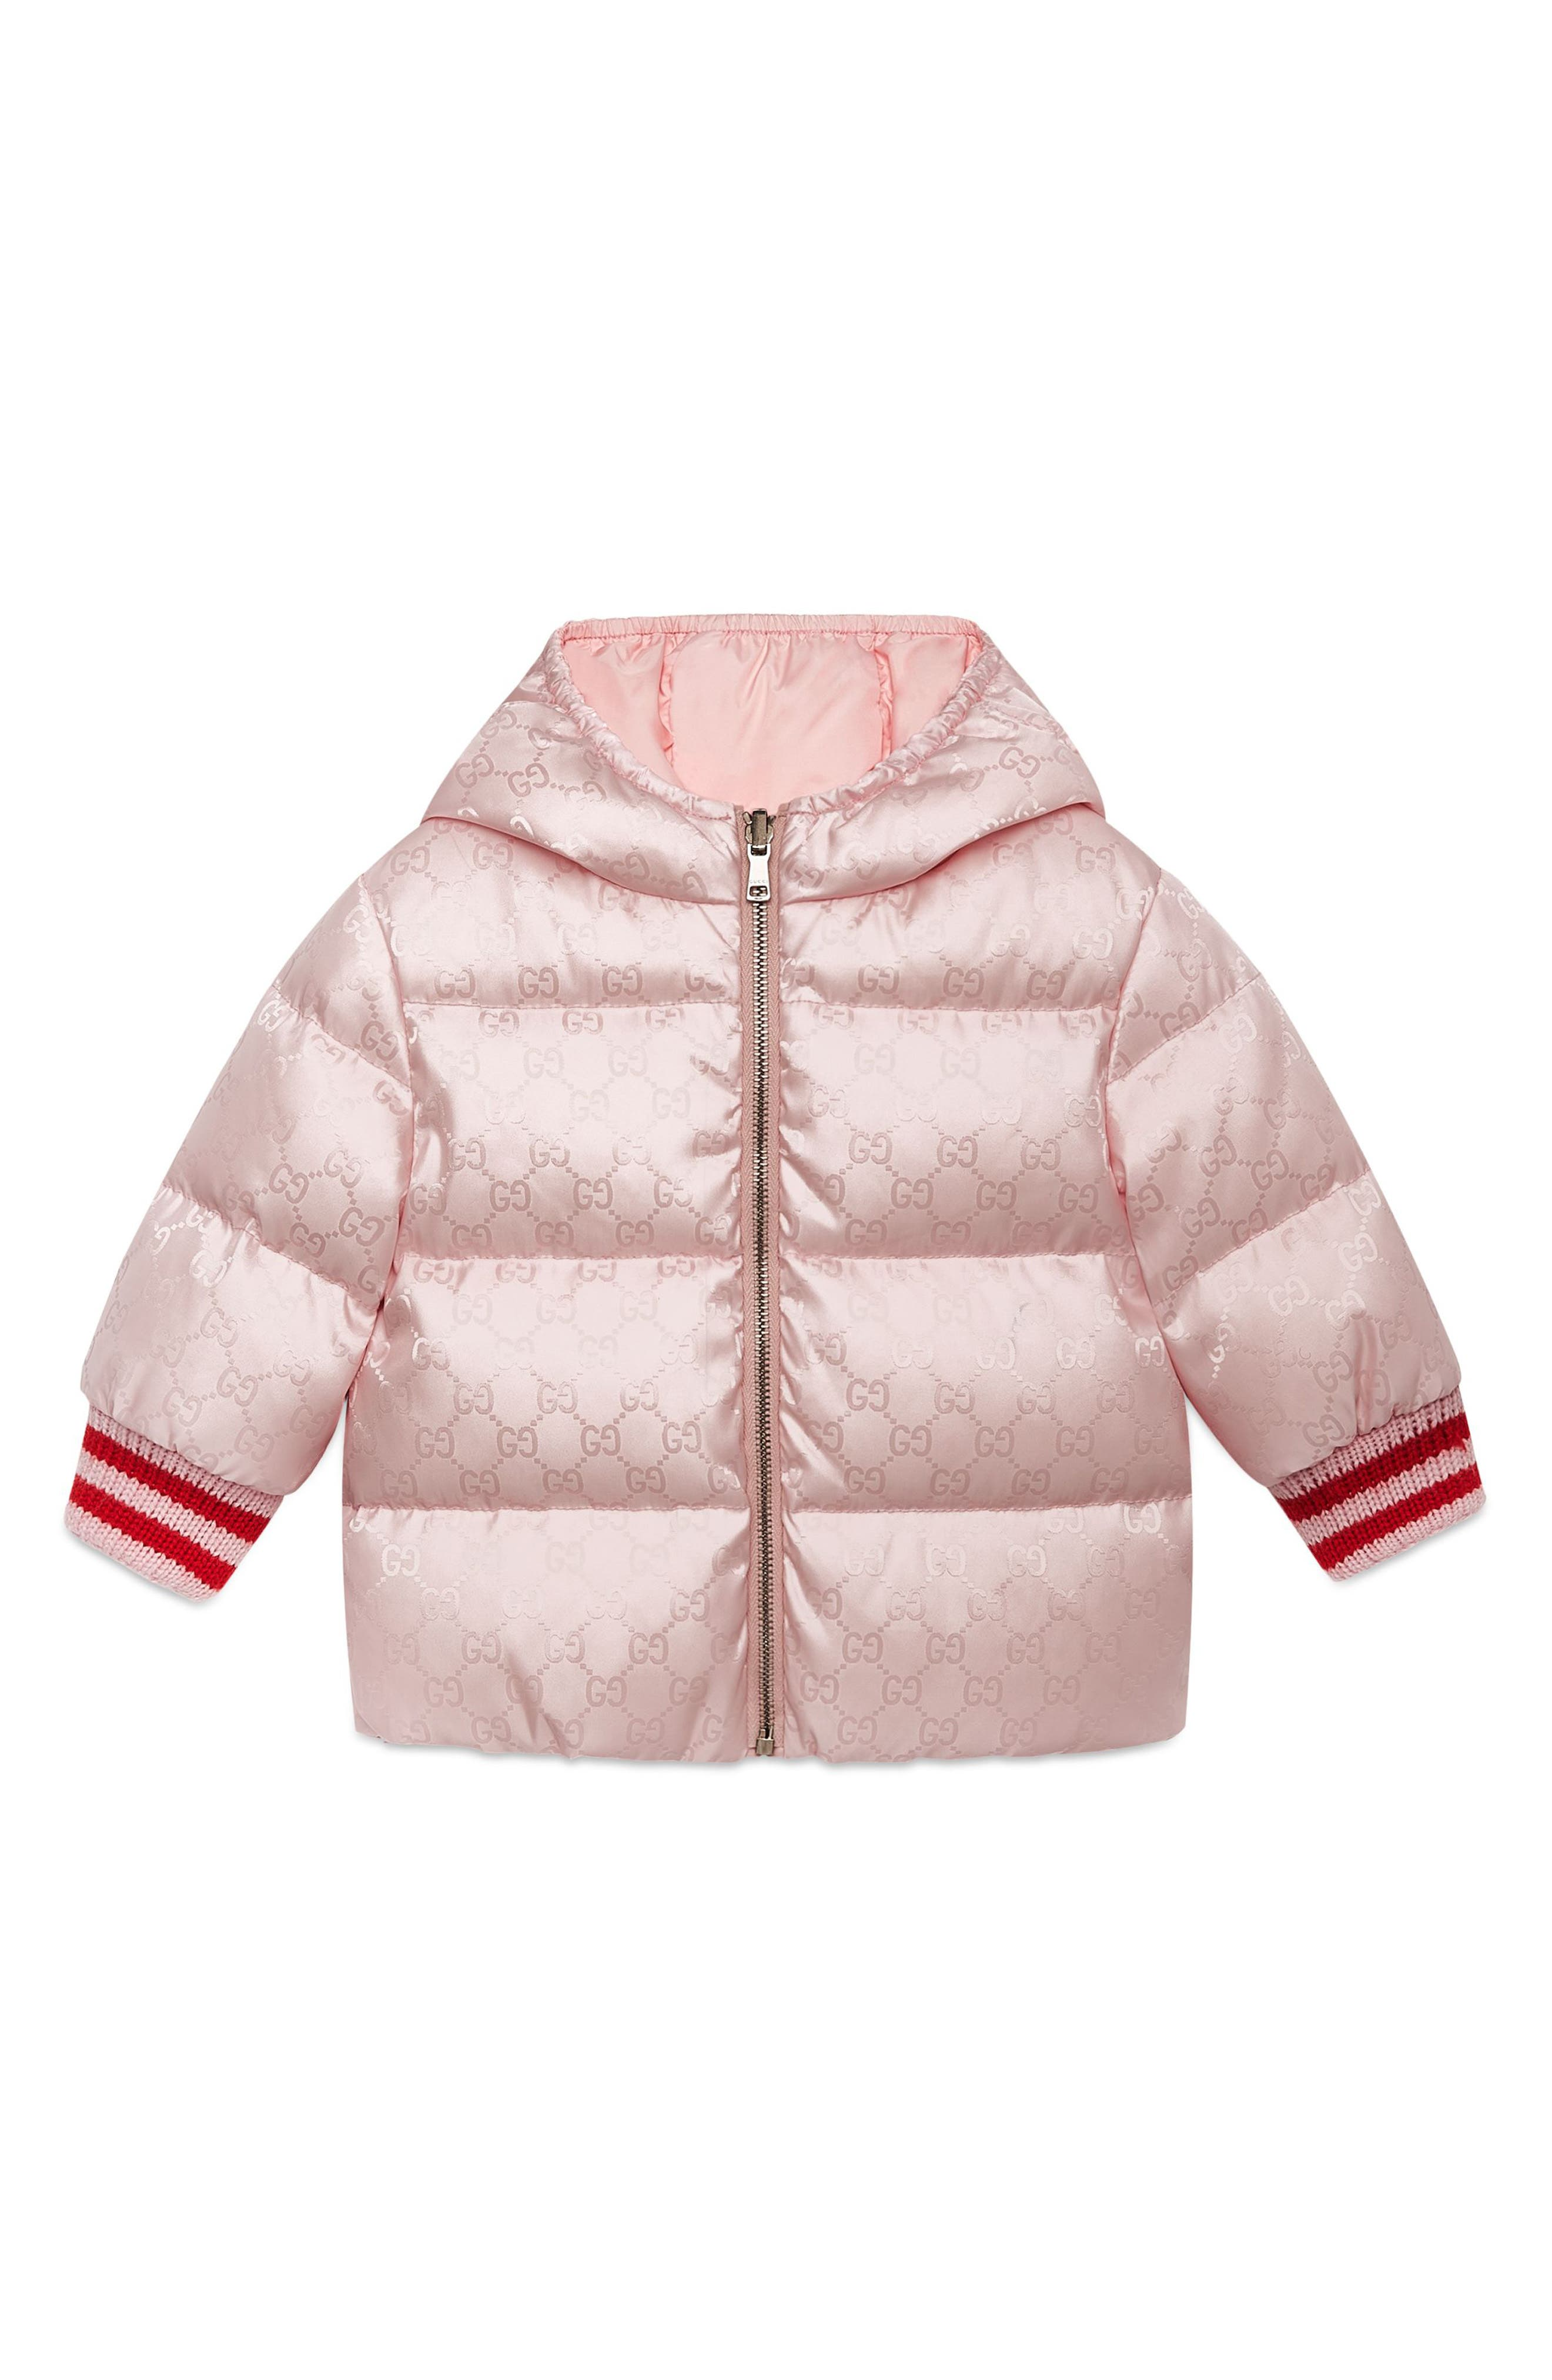 Gucci Reversible GG Jacquard Water-Resistant Down Jacket (Baby Girls)